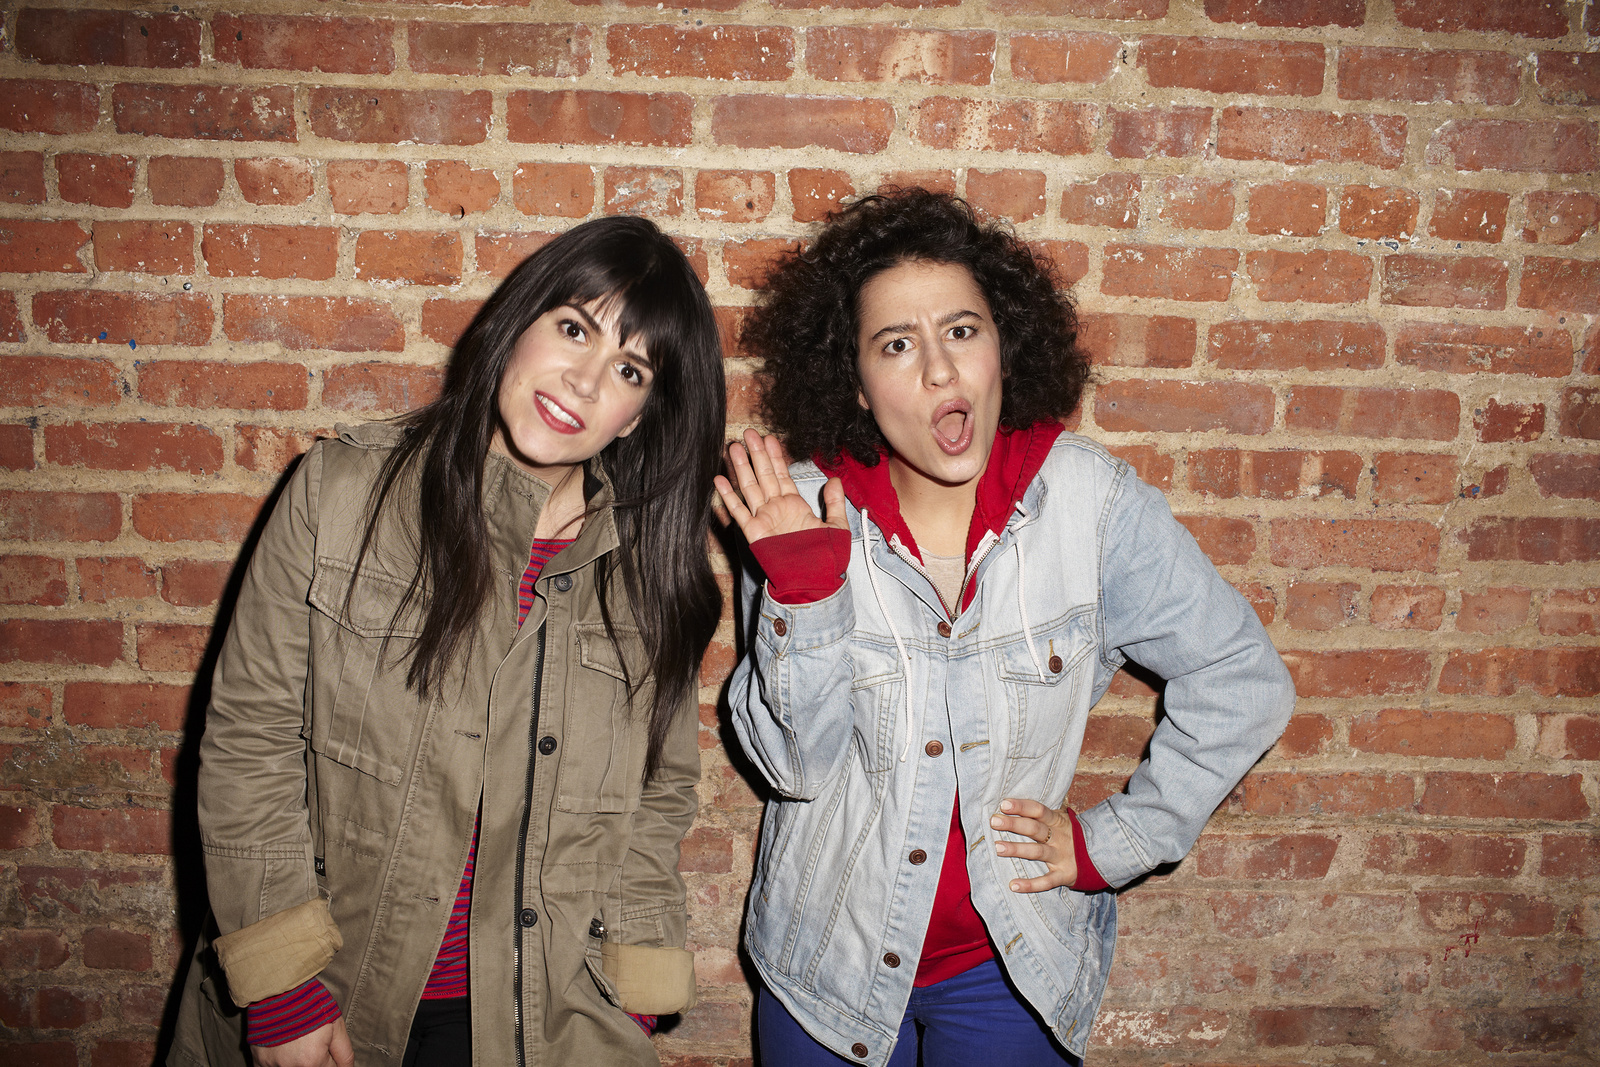 Abbi Jacobson (left) and Ilana Glazer of the Comedy Central show 'Broad City' are set to come to OSU on Nov. 10 in an OUAB-sponsored event.  Credit: Lane Savage, courtesy of Comedy Central